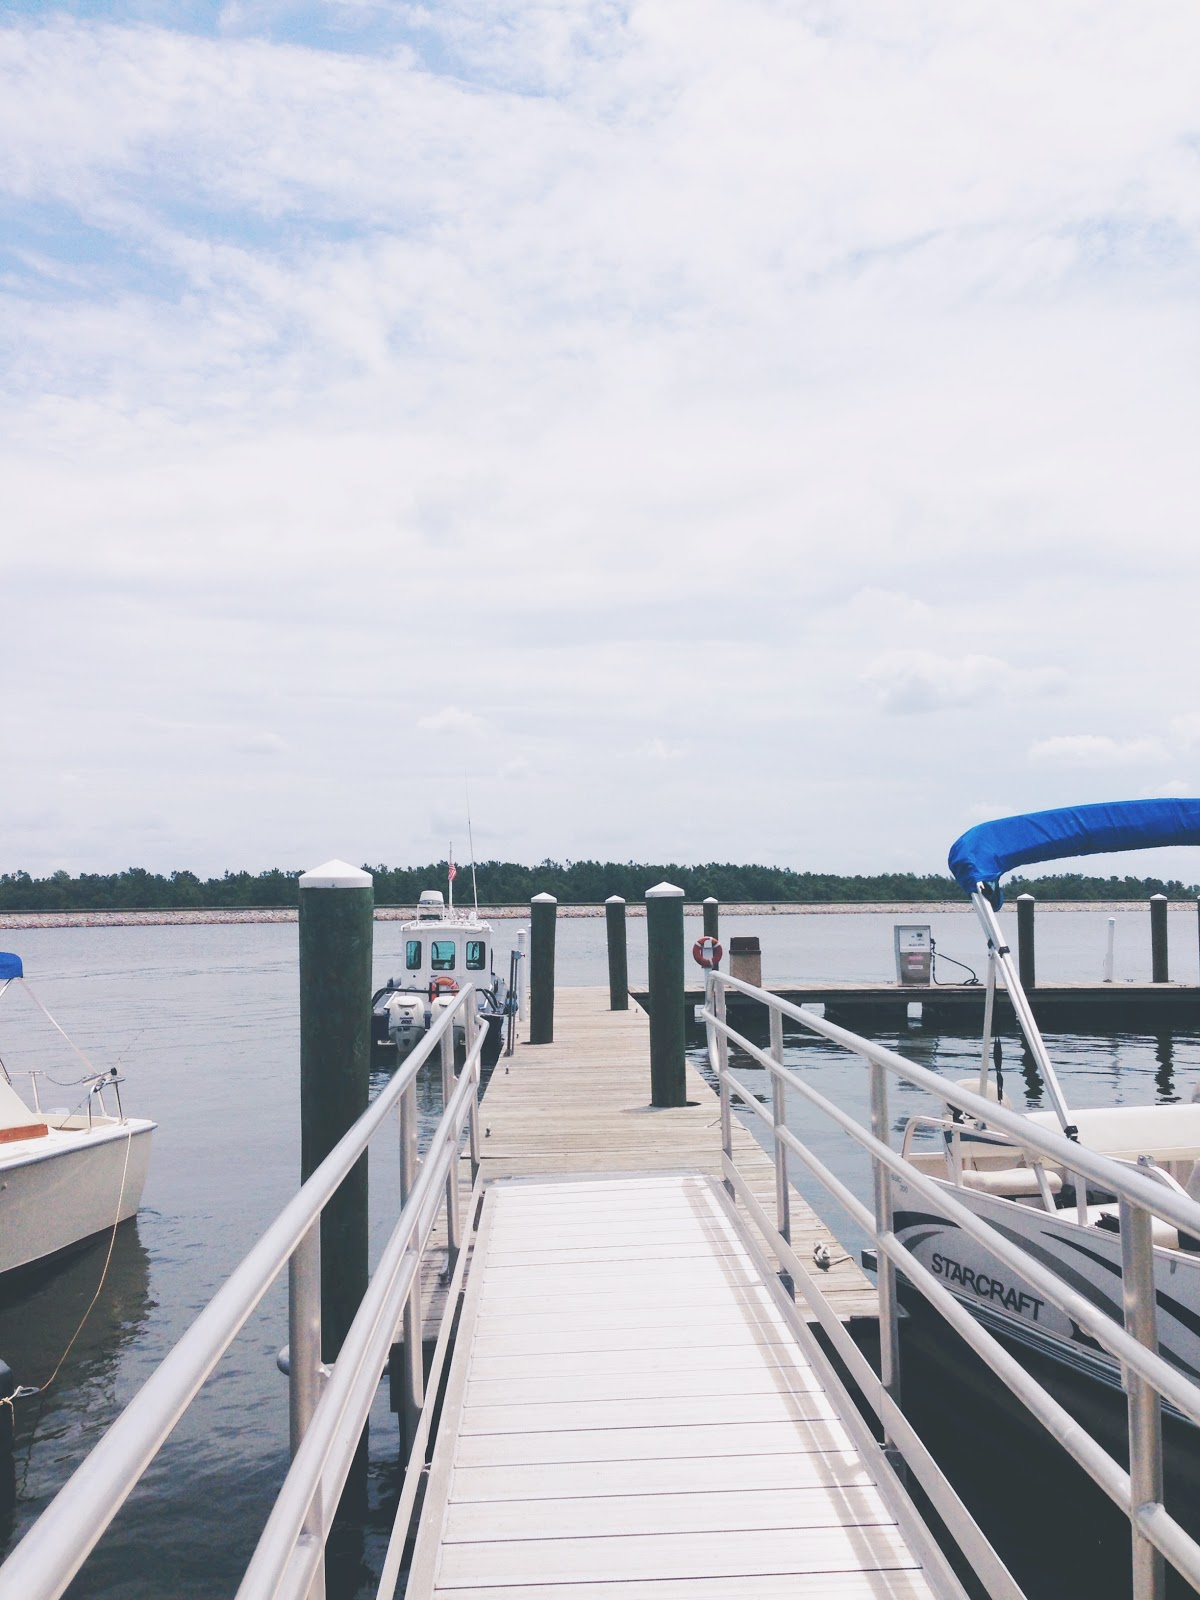 Short Stay Moncks Corner Lake Moultrie Boat Pier